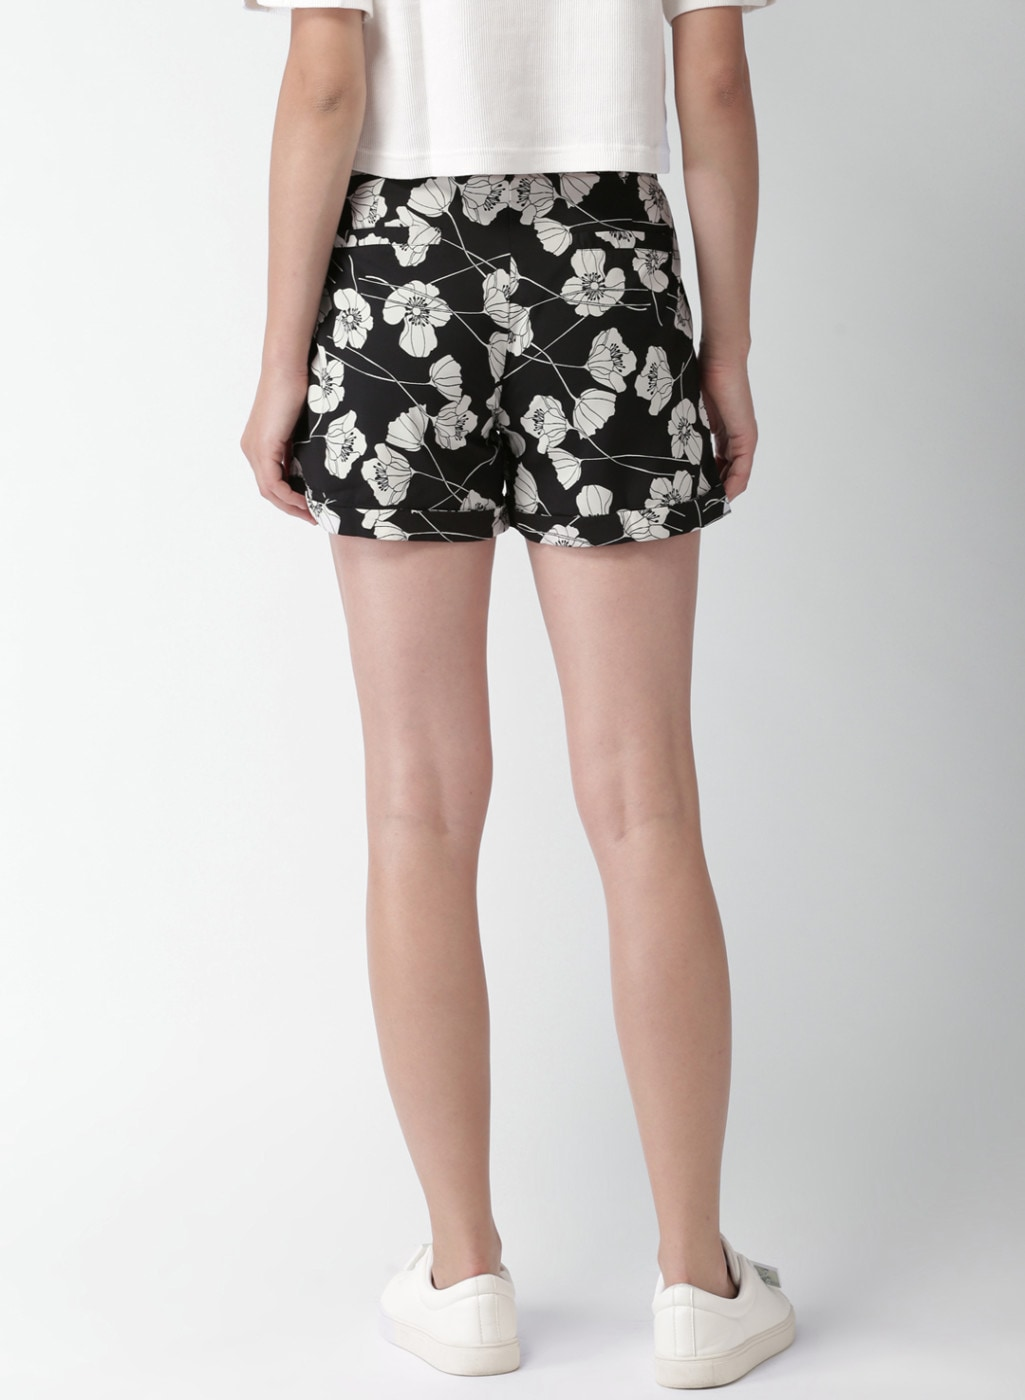 ce5b78a42 Mast & Harbour Women Shorts - Buy Mast & Harbour Women Shorts Online in  India - Jabong